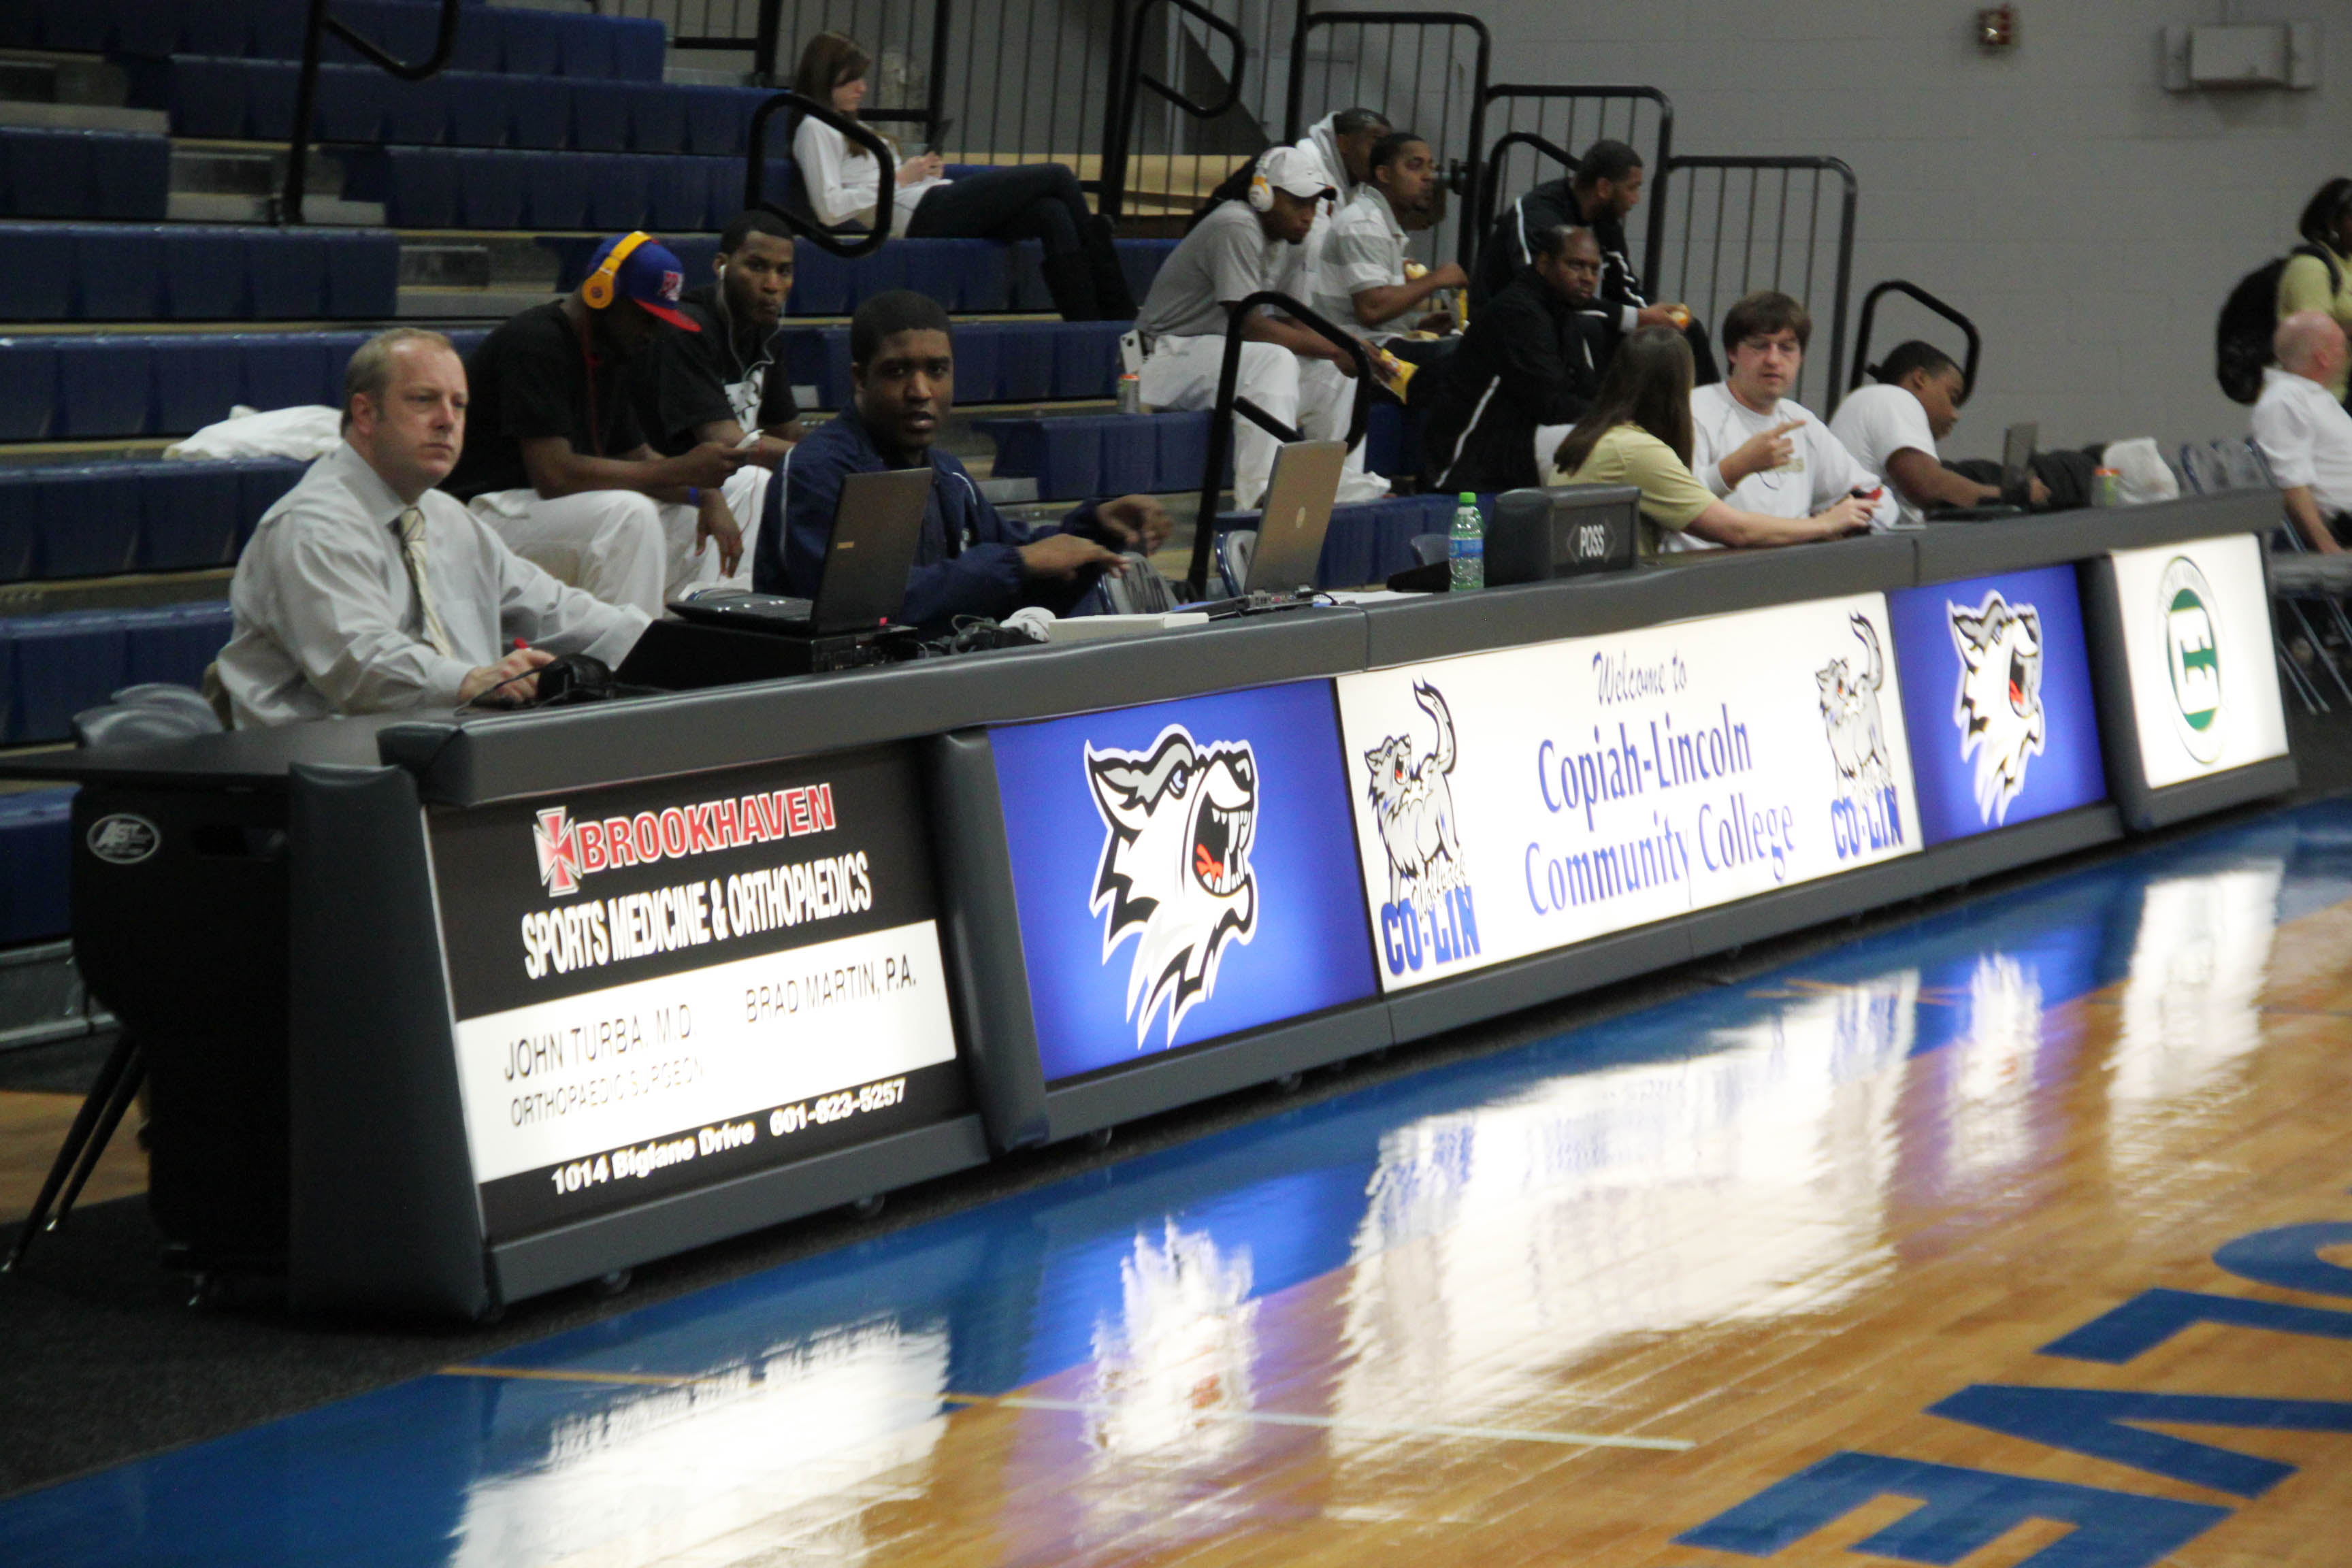 Copiah Lincoln Basketball Scorer's Table